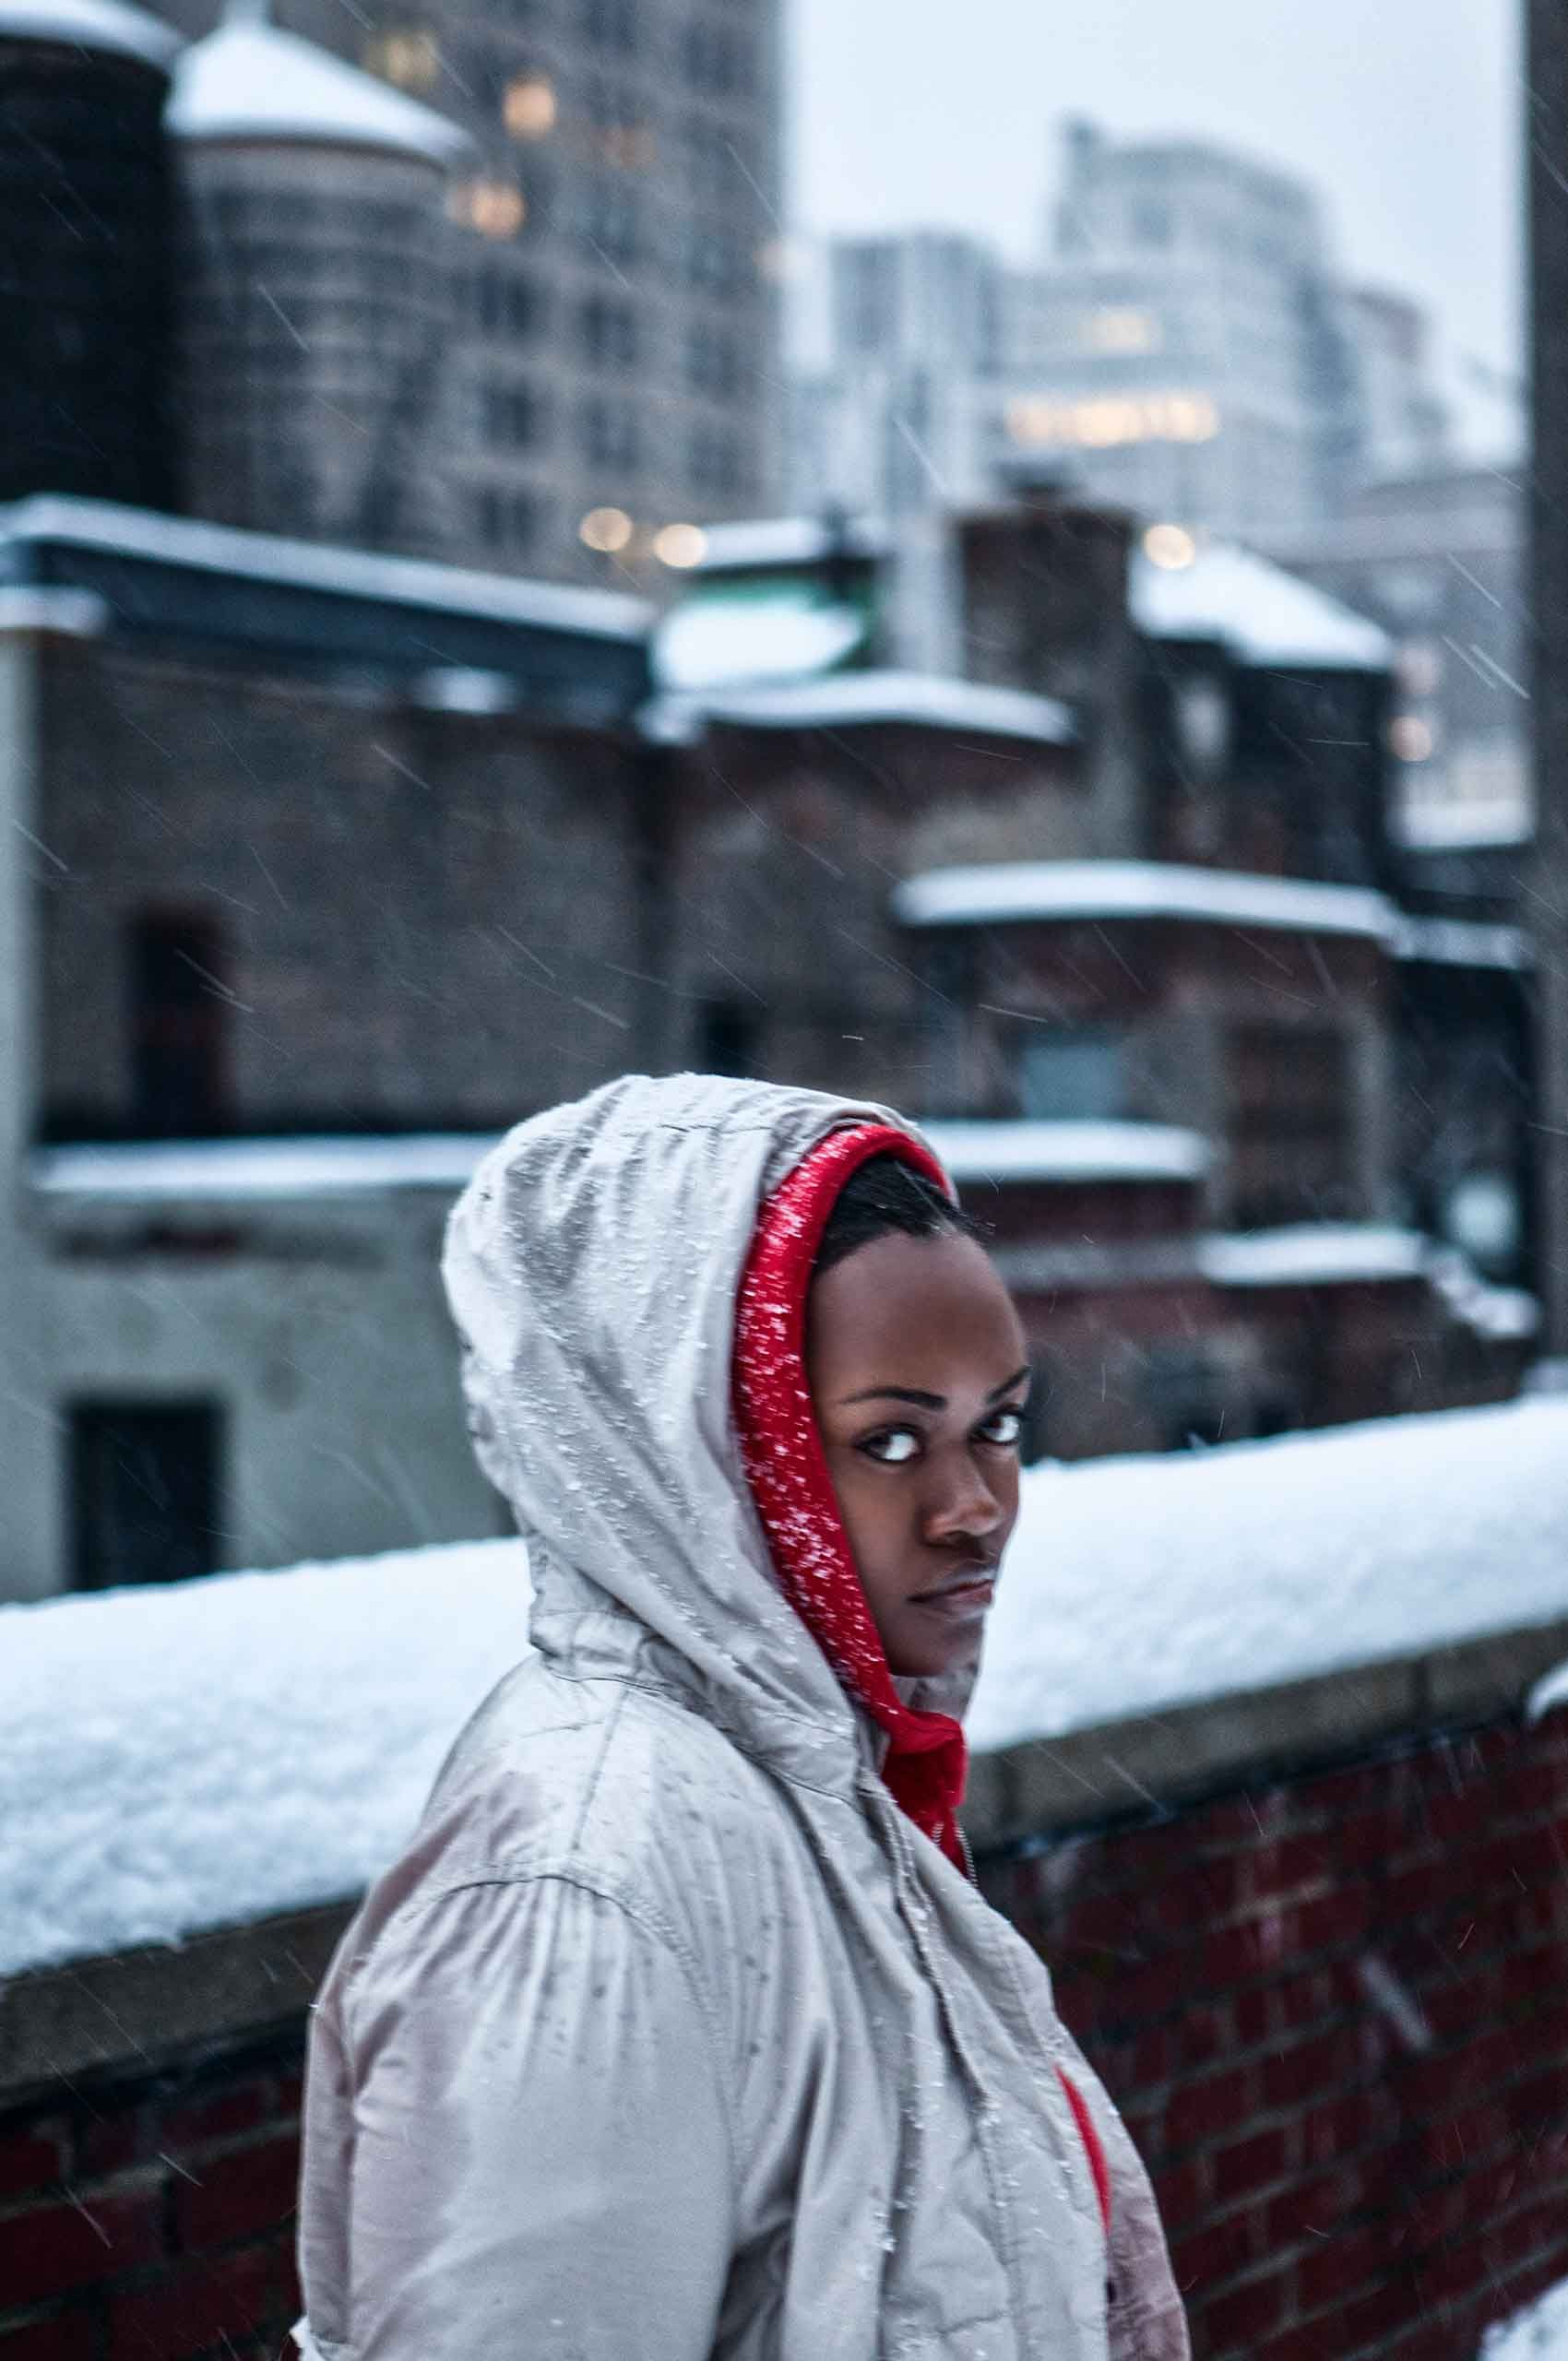 africanamerican-young-woman-on-snowy-rooftop-by-HenrikOlundPhotography.jpg